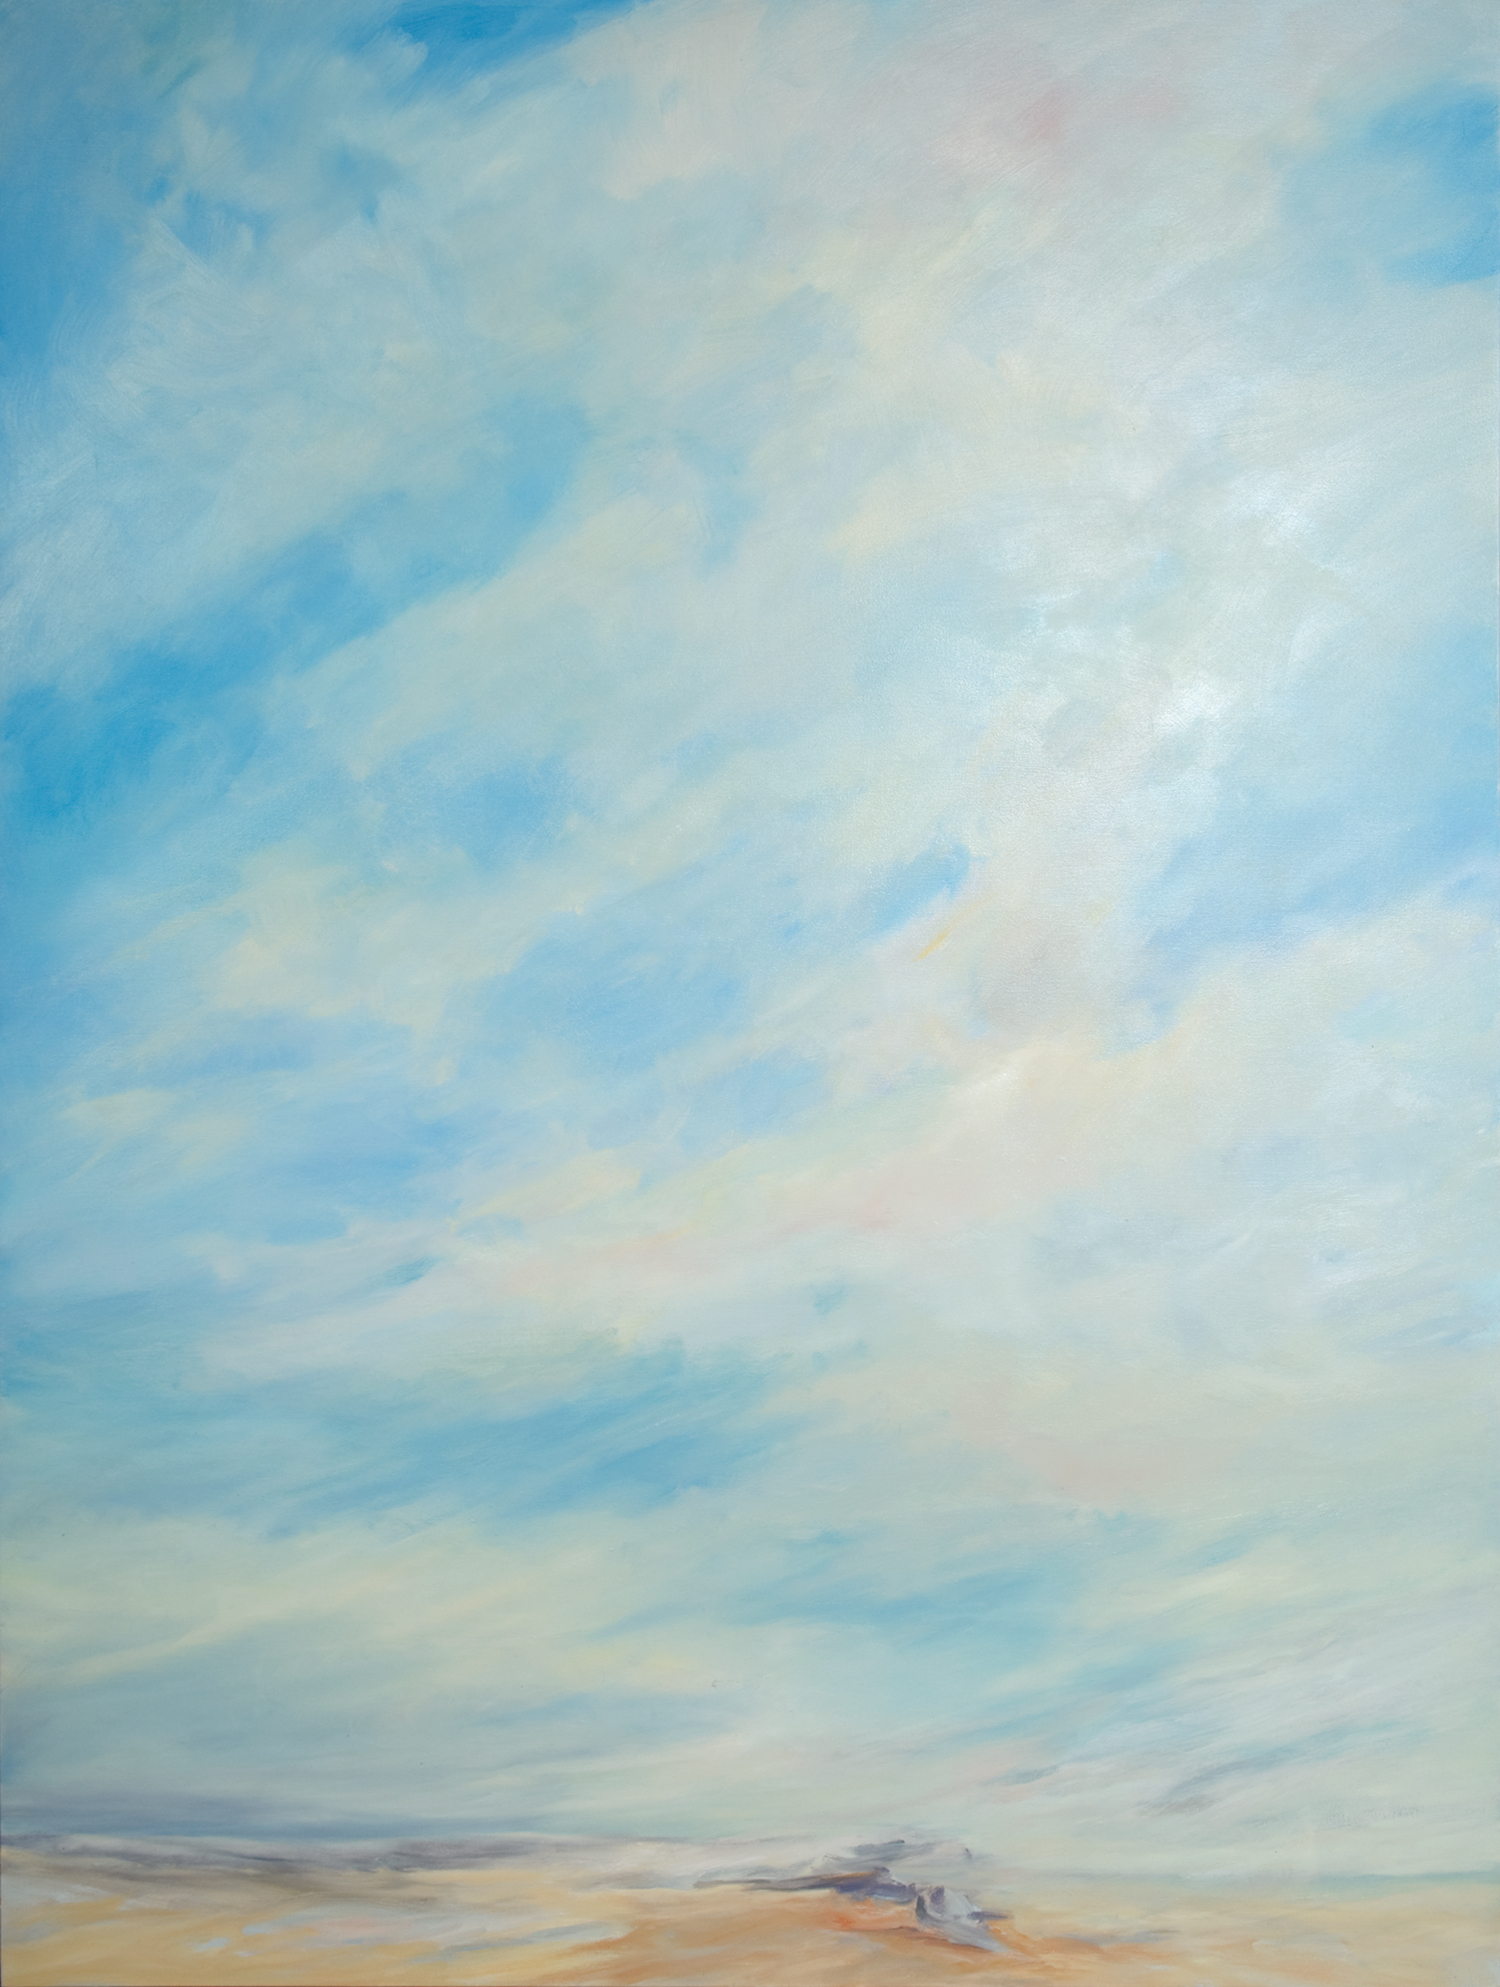 Winter Afternoon Sky,  2009, Oil on Canvas, 72 x 54 inches (Private Collection, Fredericton, NB)